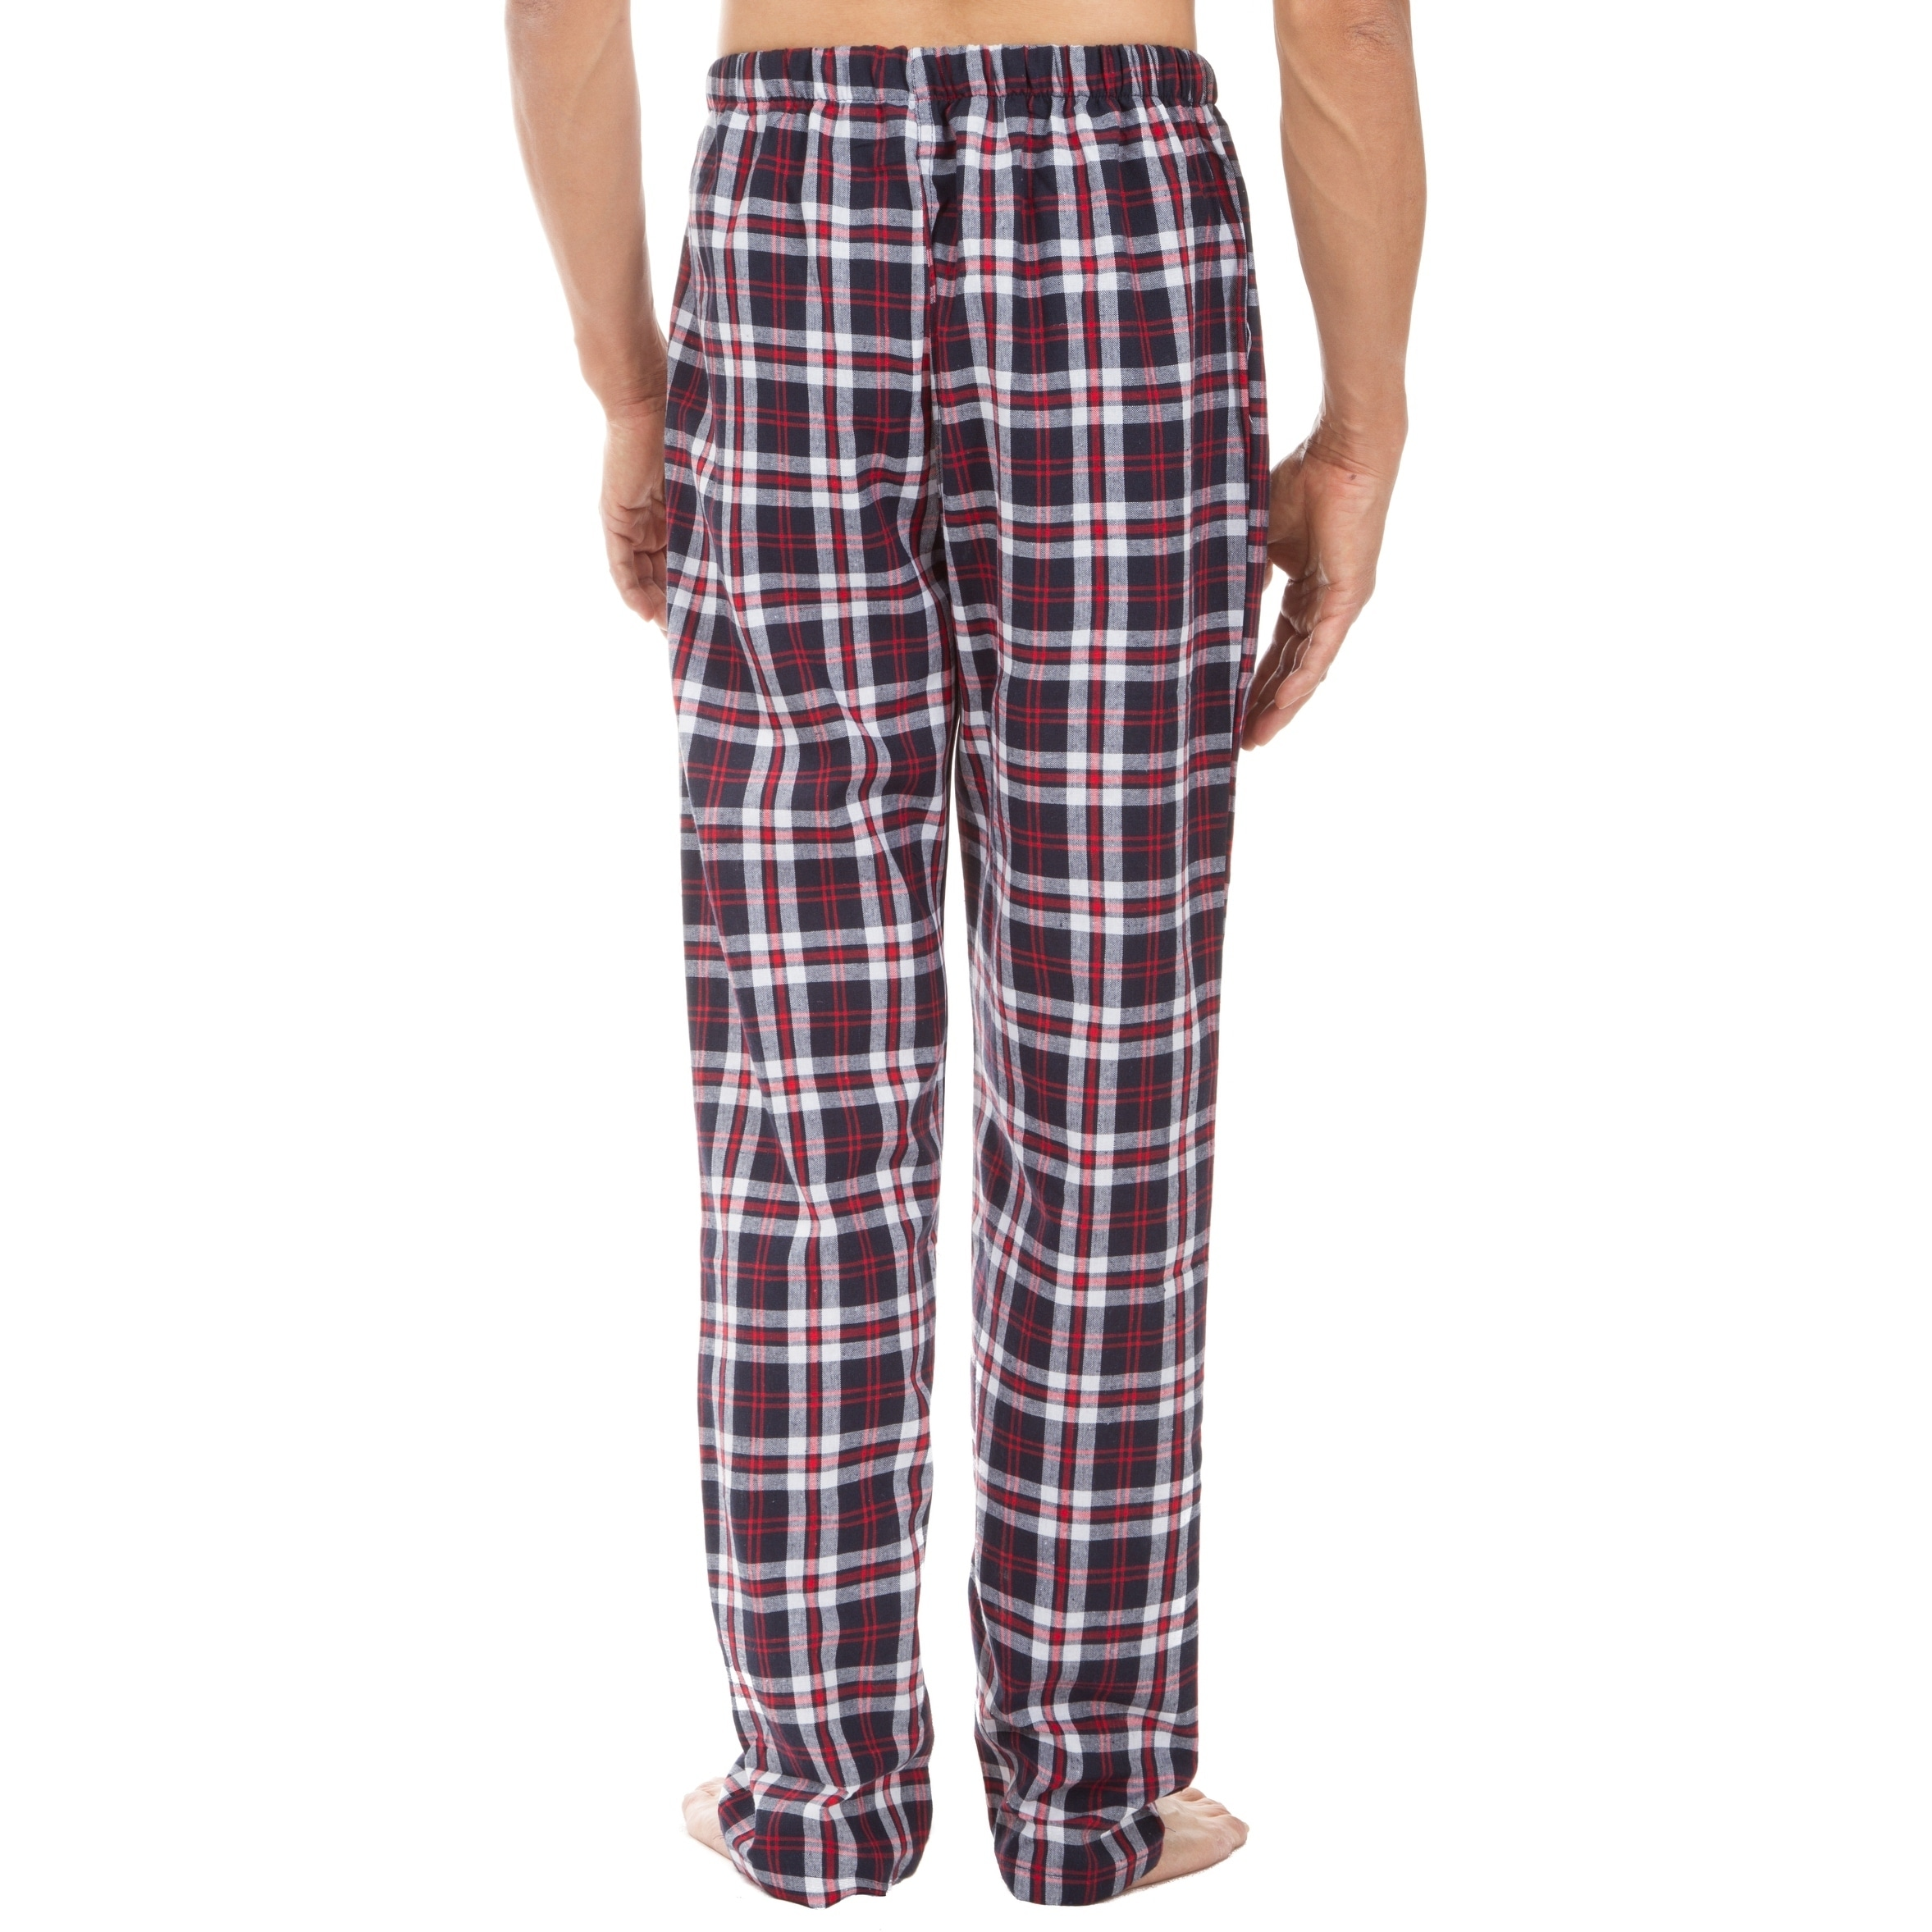 e9f2b4b2c17 Shop Leisureland Men s Red Plaid Pajama Pants - Free Shipping On Orders  Over  45 - Overstock - 18768209